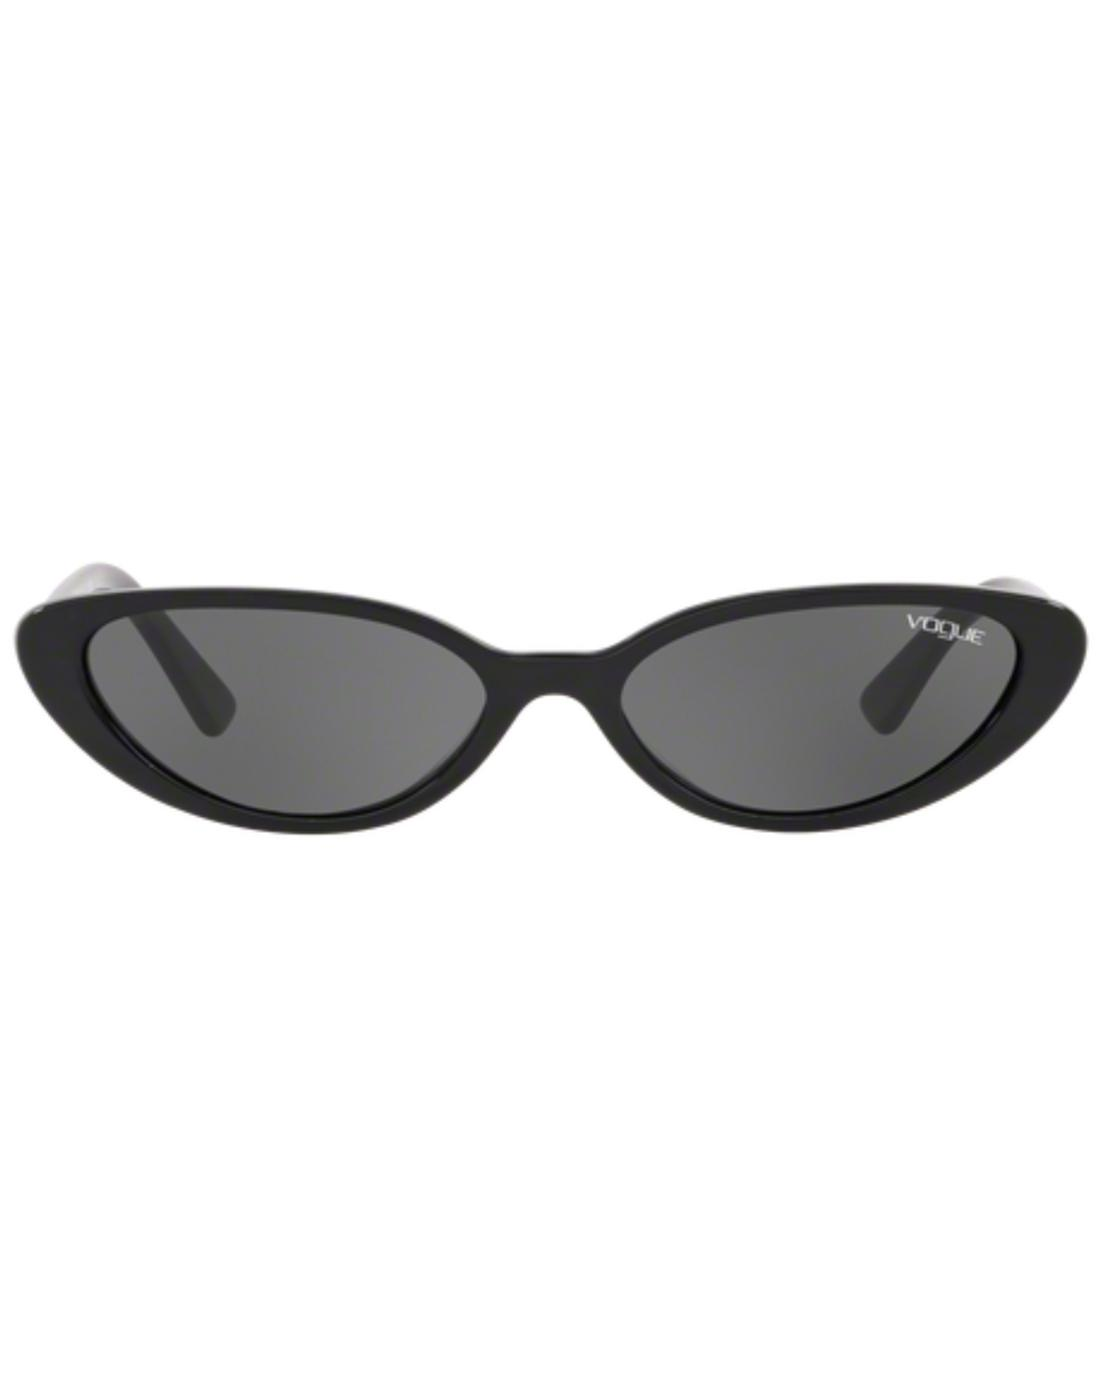 VOGUE Gigi Hadid Retro 50s Cats-eye Sunglasses Blk